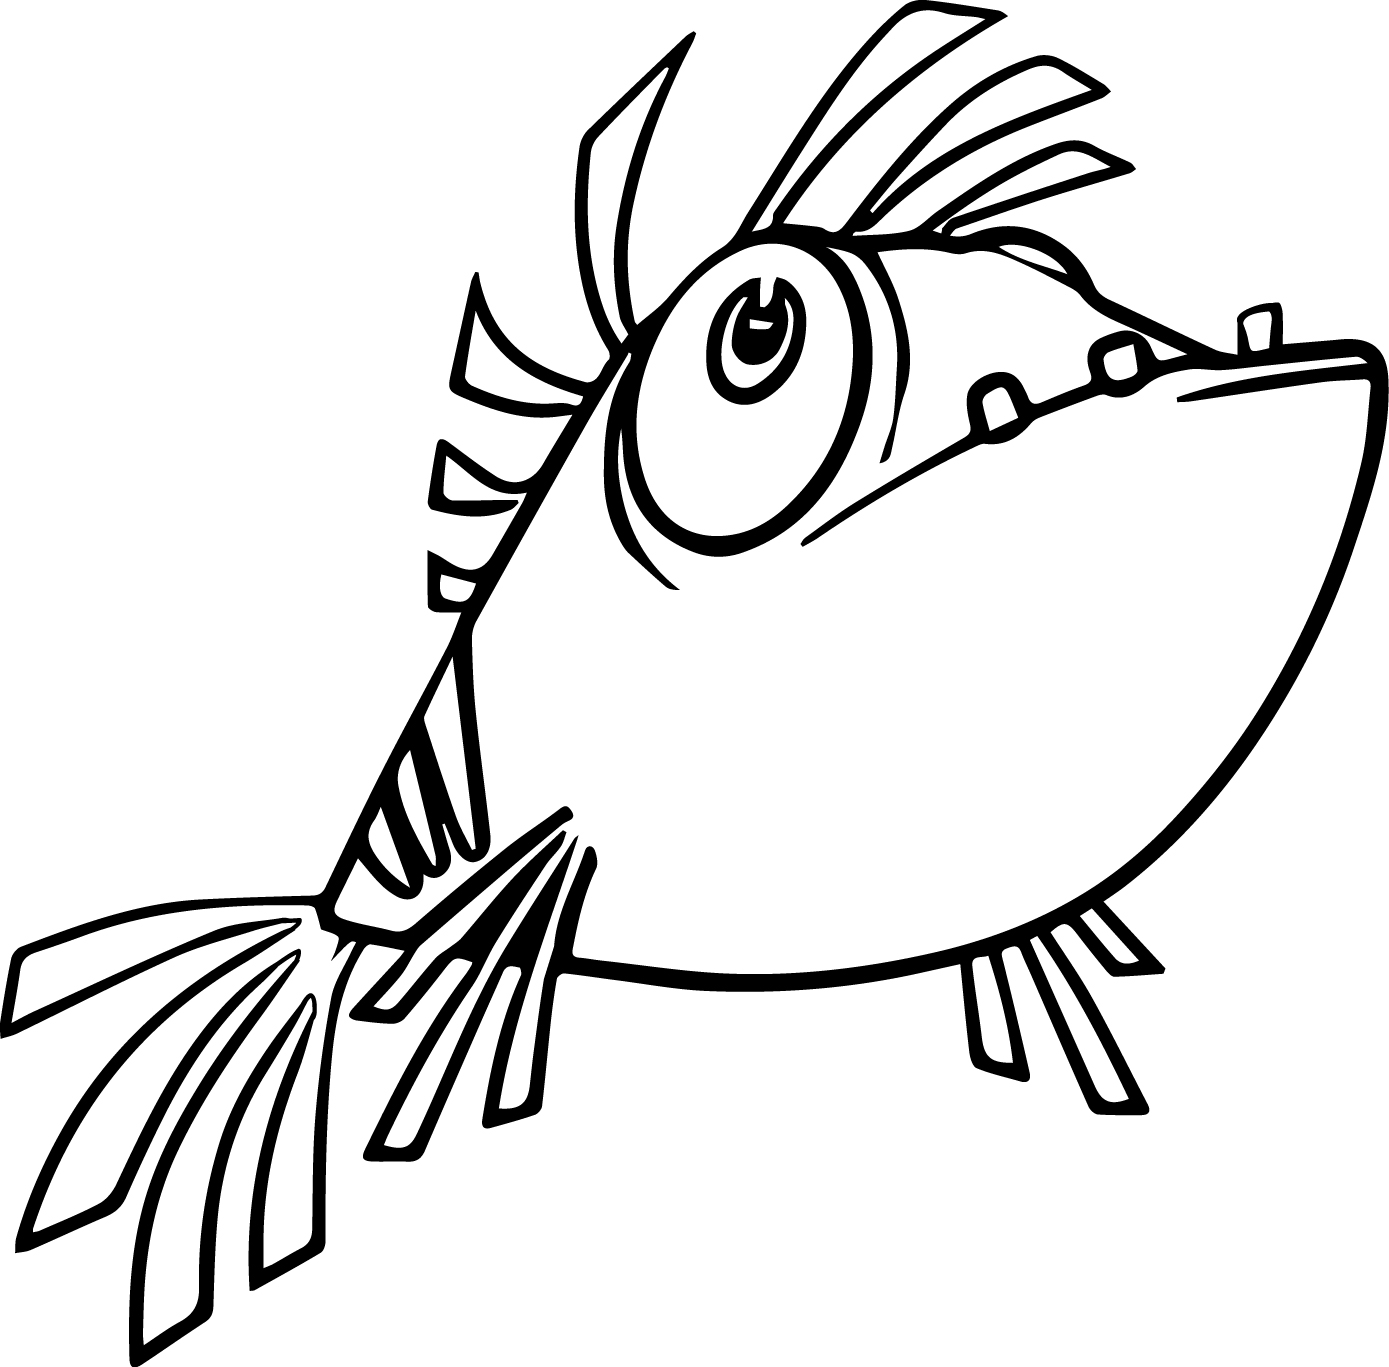 Hungry Cartoon Fish Coloring Page Sheet